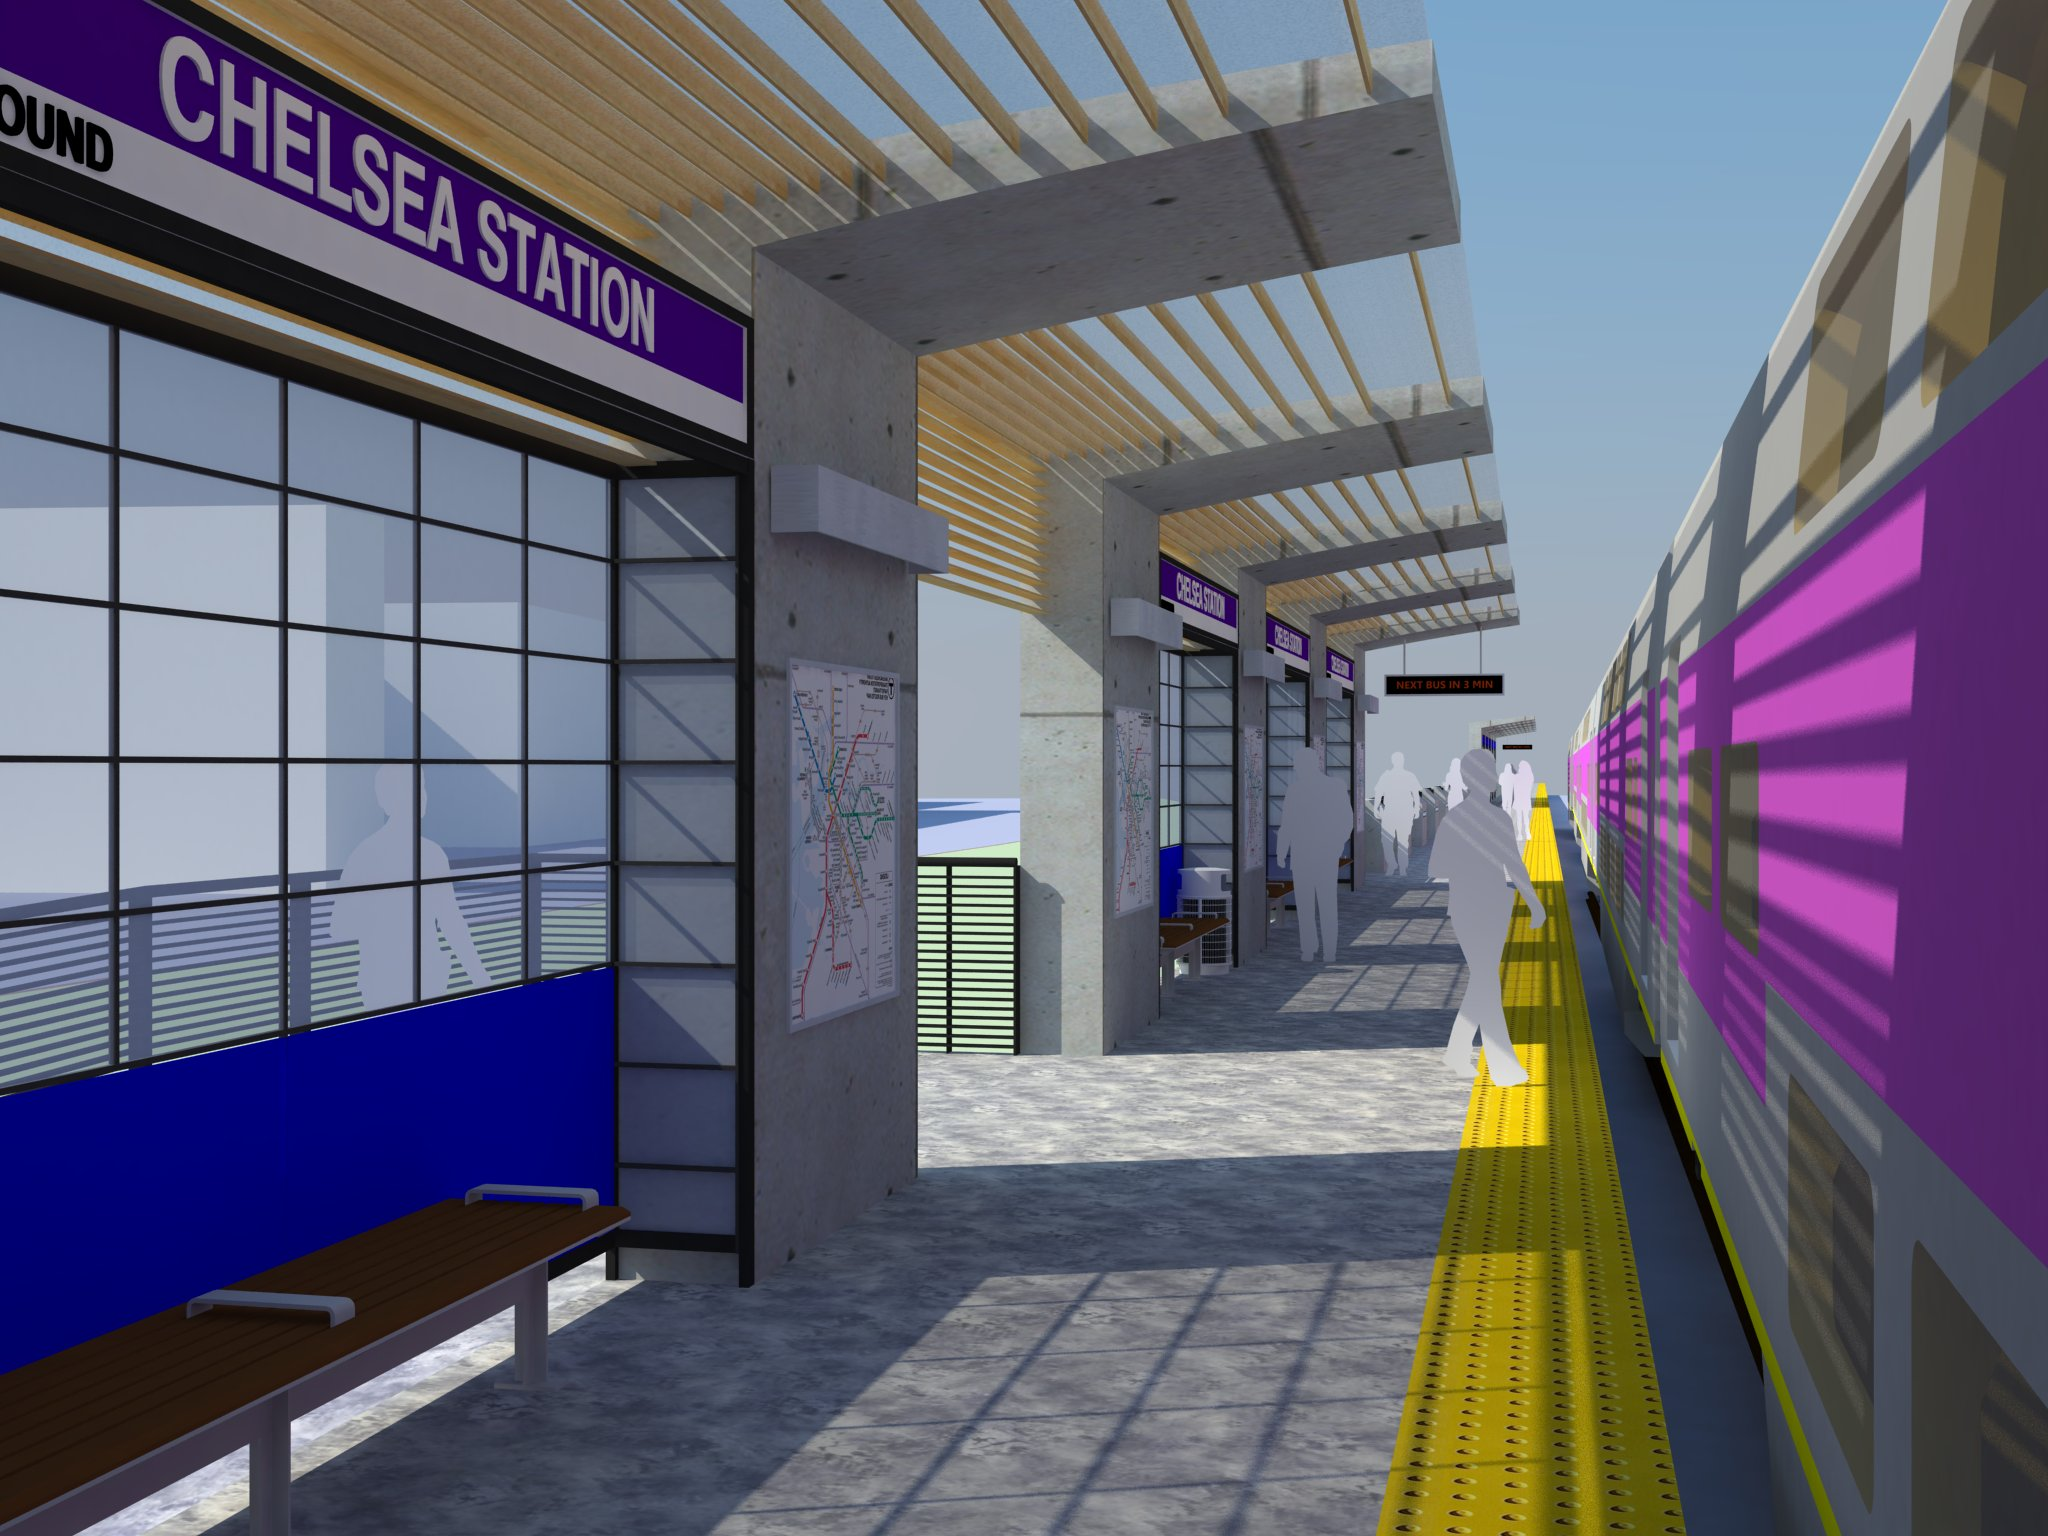 Rendering of the new Chelsea Commuter Rail Station, with a closeup of the platform, canopy, and train pulled up.